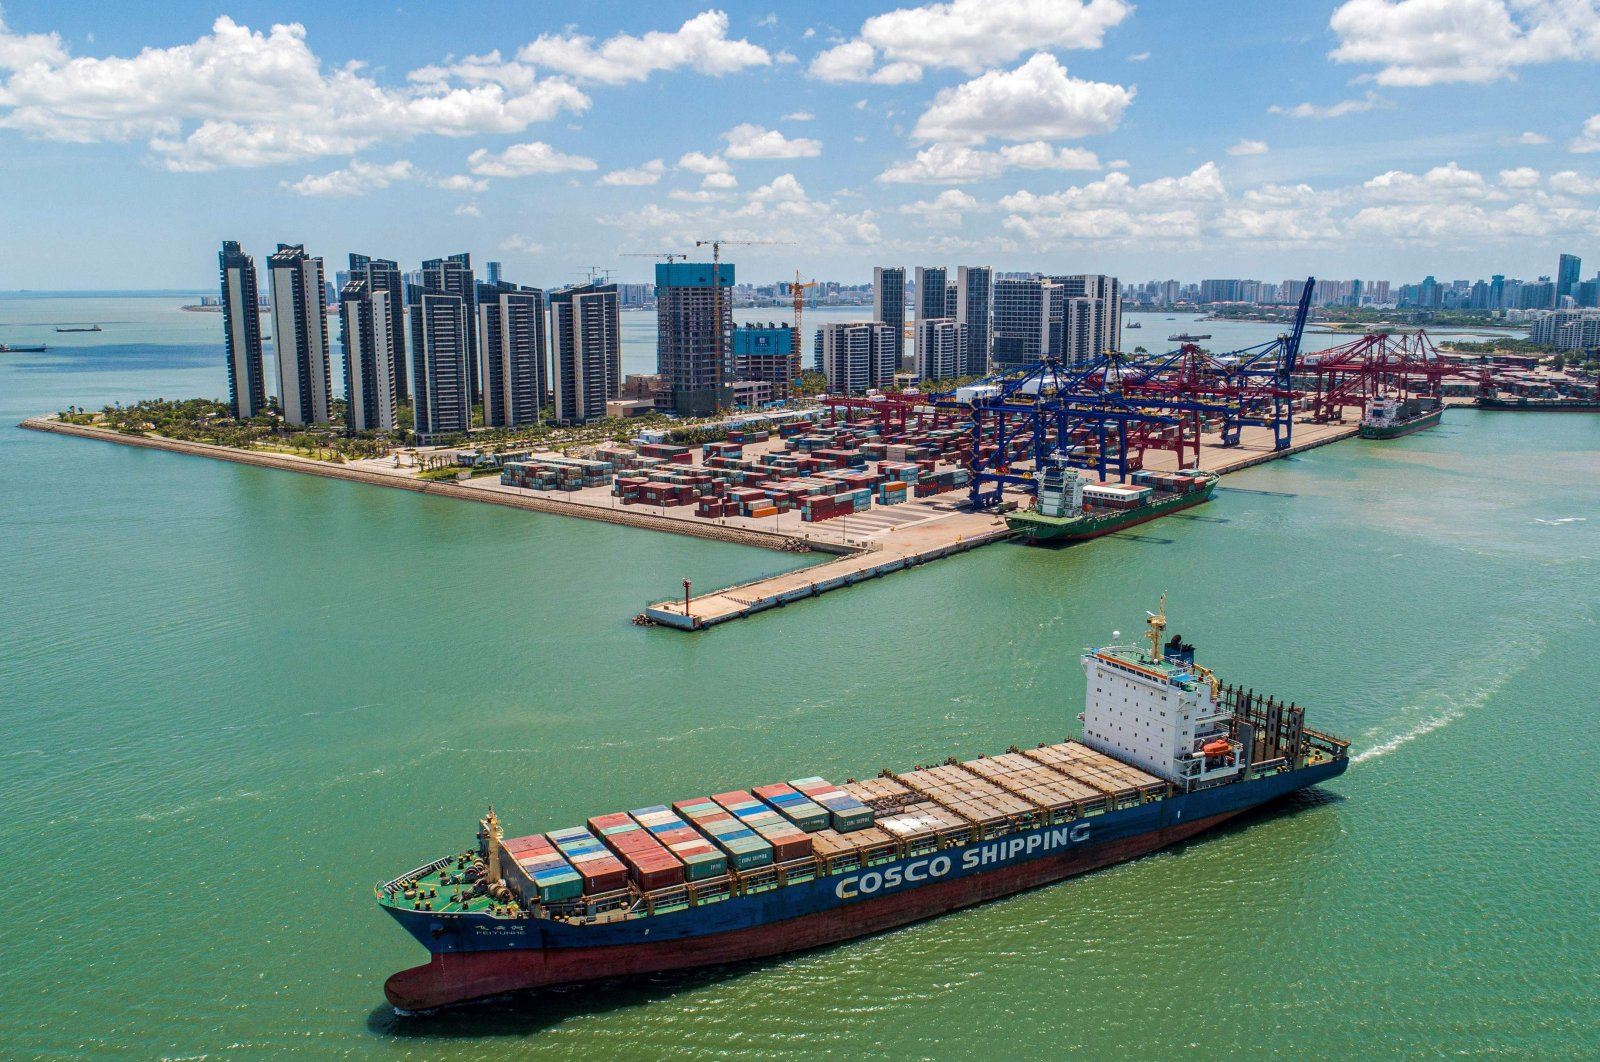 A cargo ship loaded with containers leaves a port in Haikou, Hainan province, southern China, May 17, 2021. (AFP Photo)